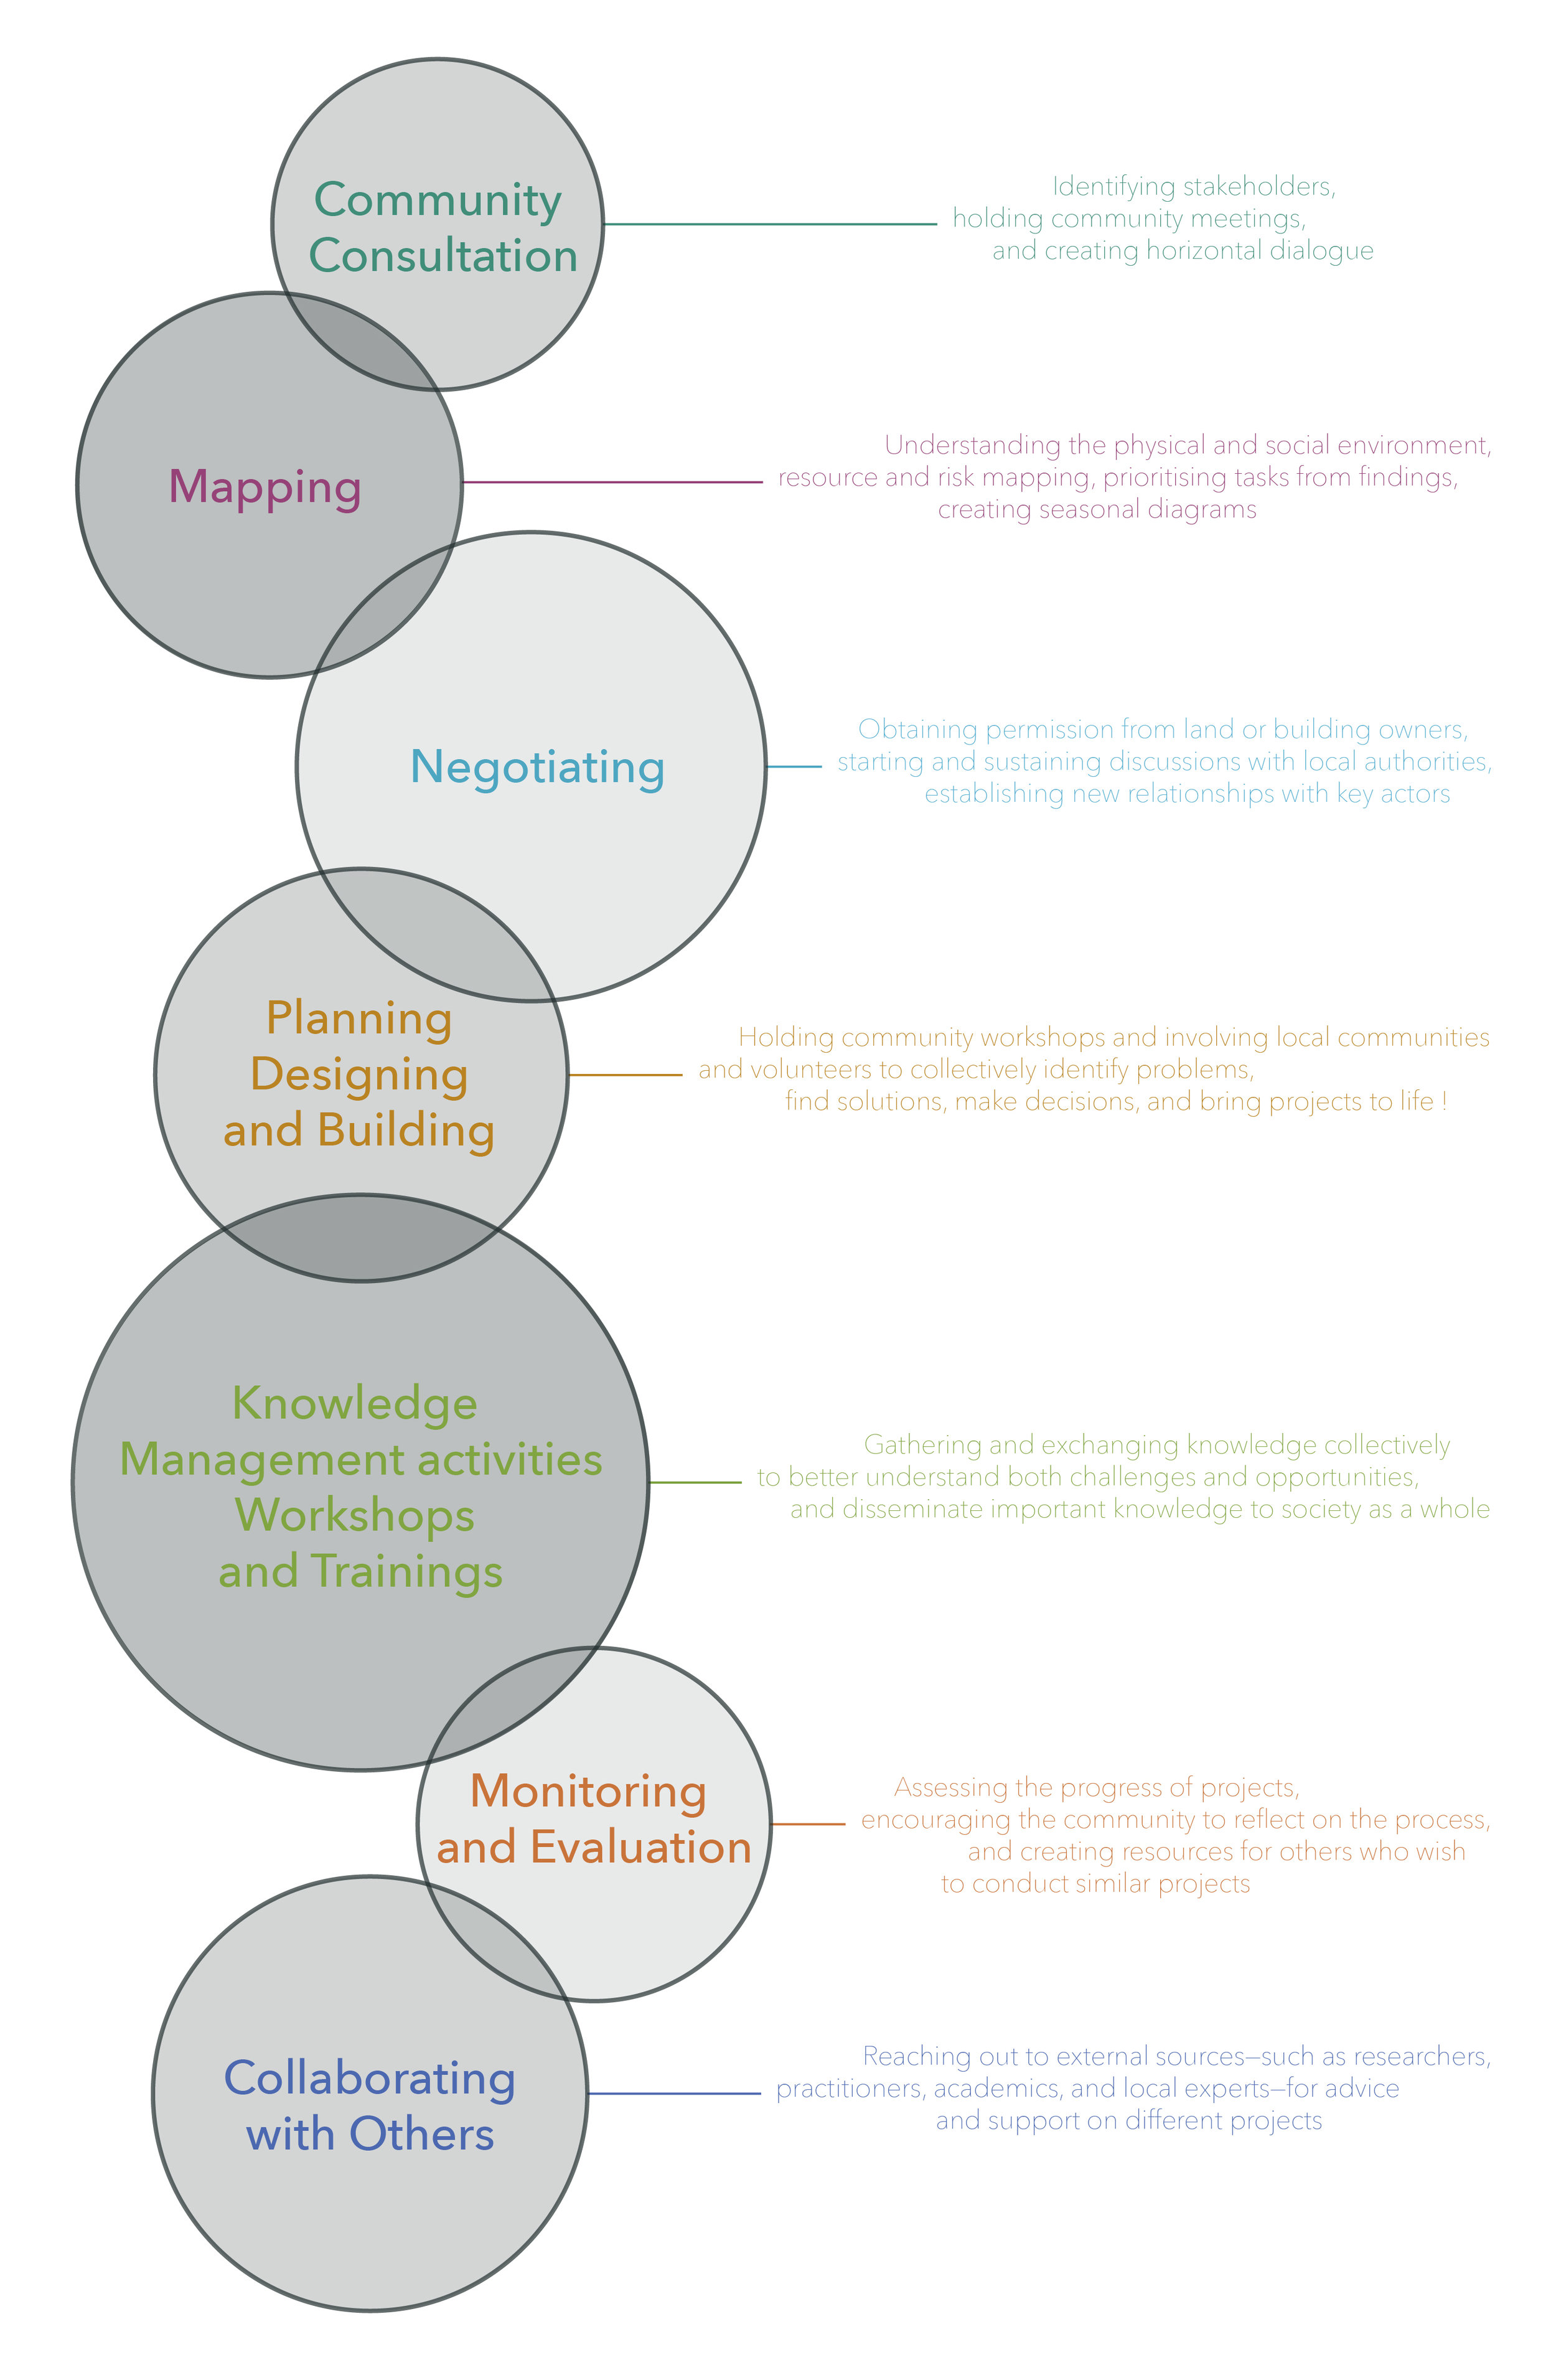 Openspace's approach: community consultation, mapping, negotiating, planning, designing, building, collaborating, knowledge management and workshops